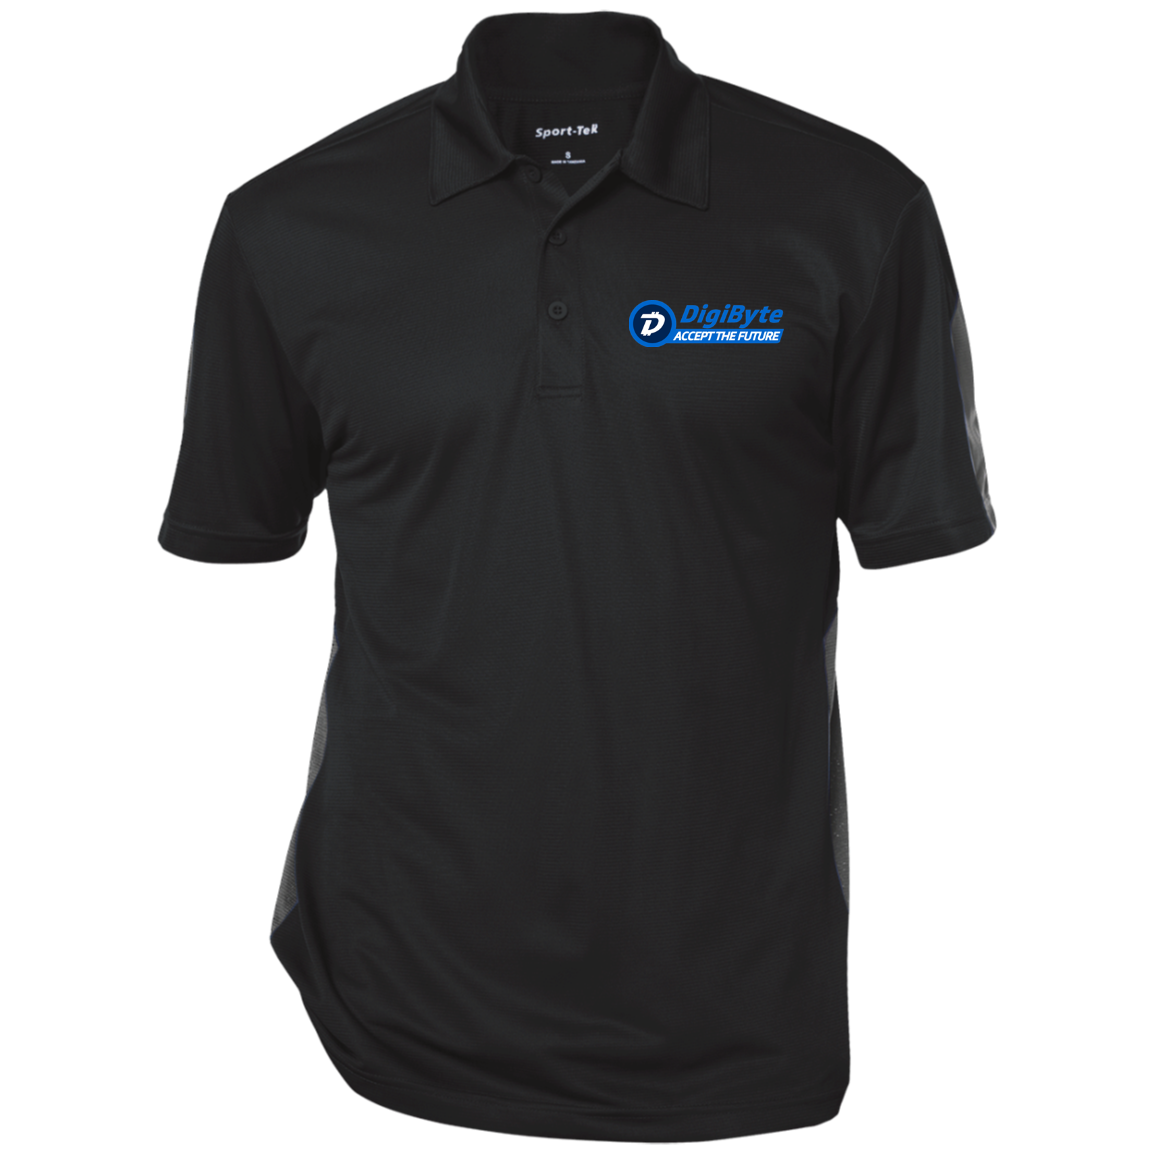 DigiByte Accept the Future – Embroidered Performance Polo by Sport-Tek (Dark)